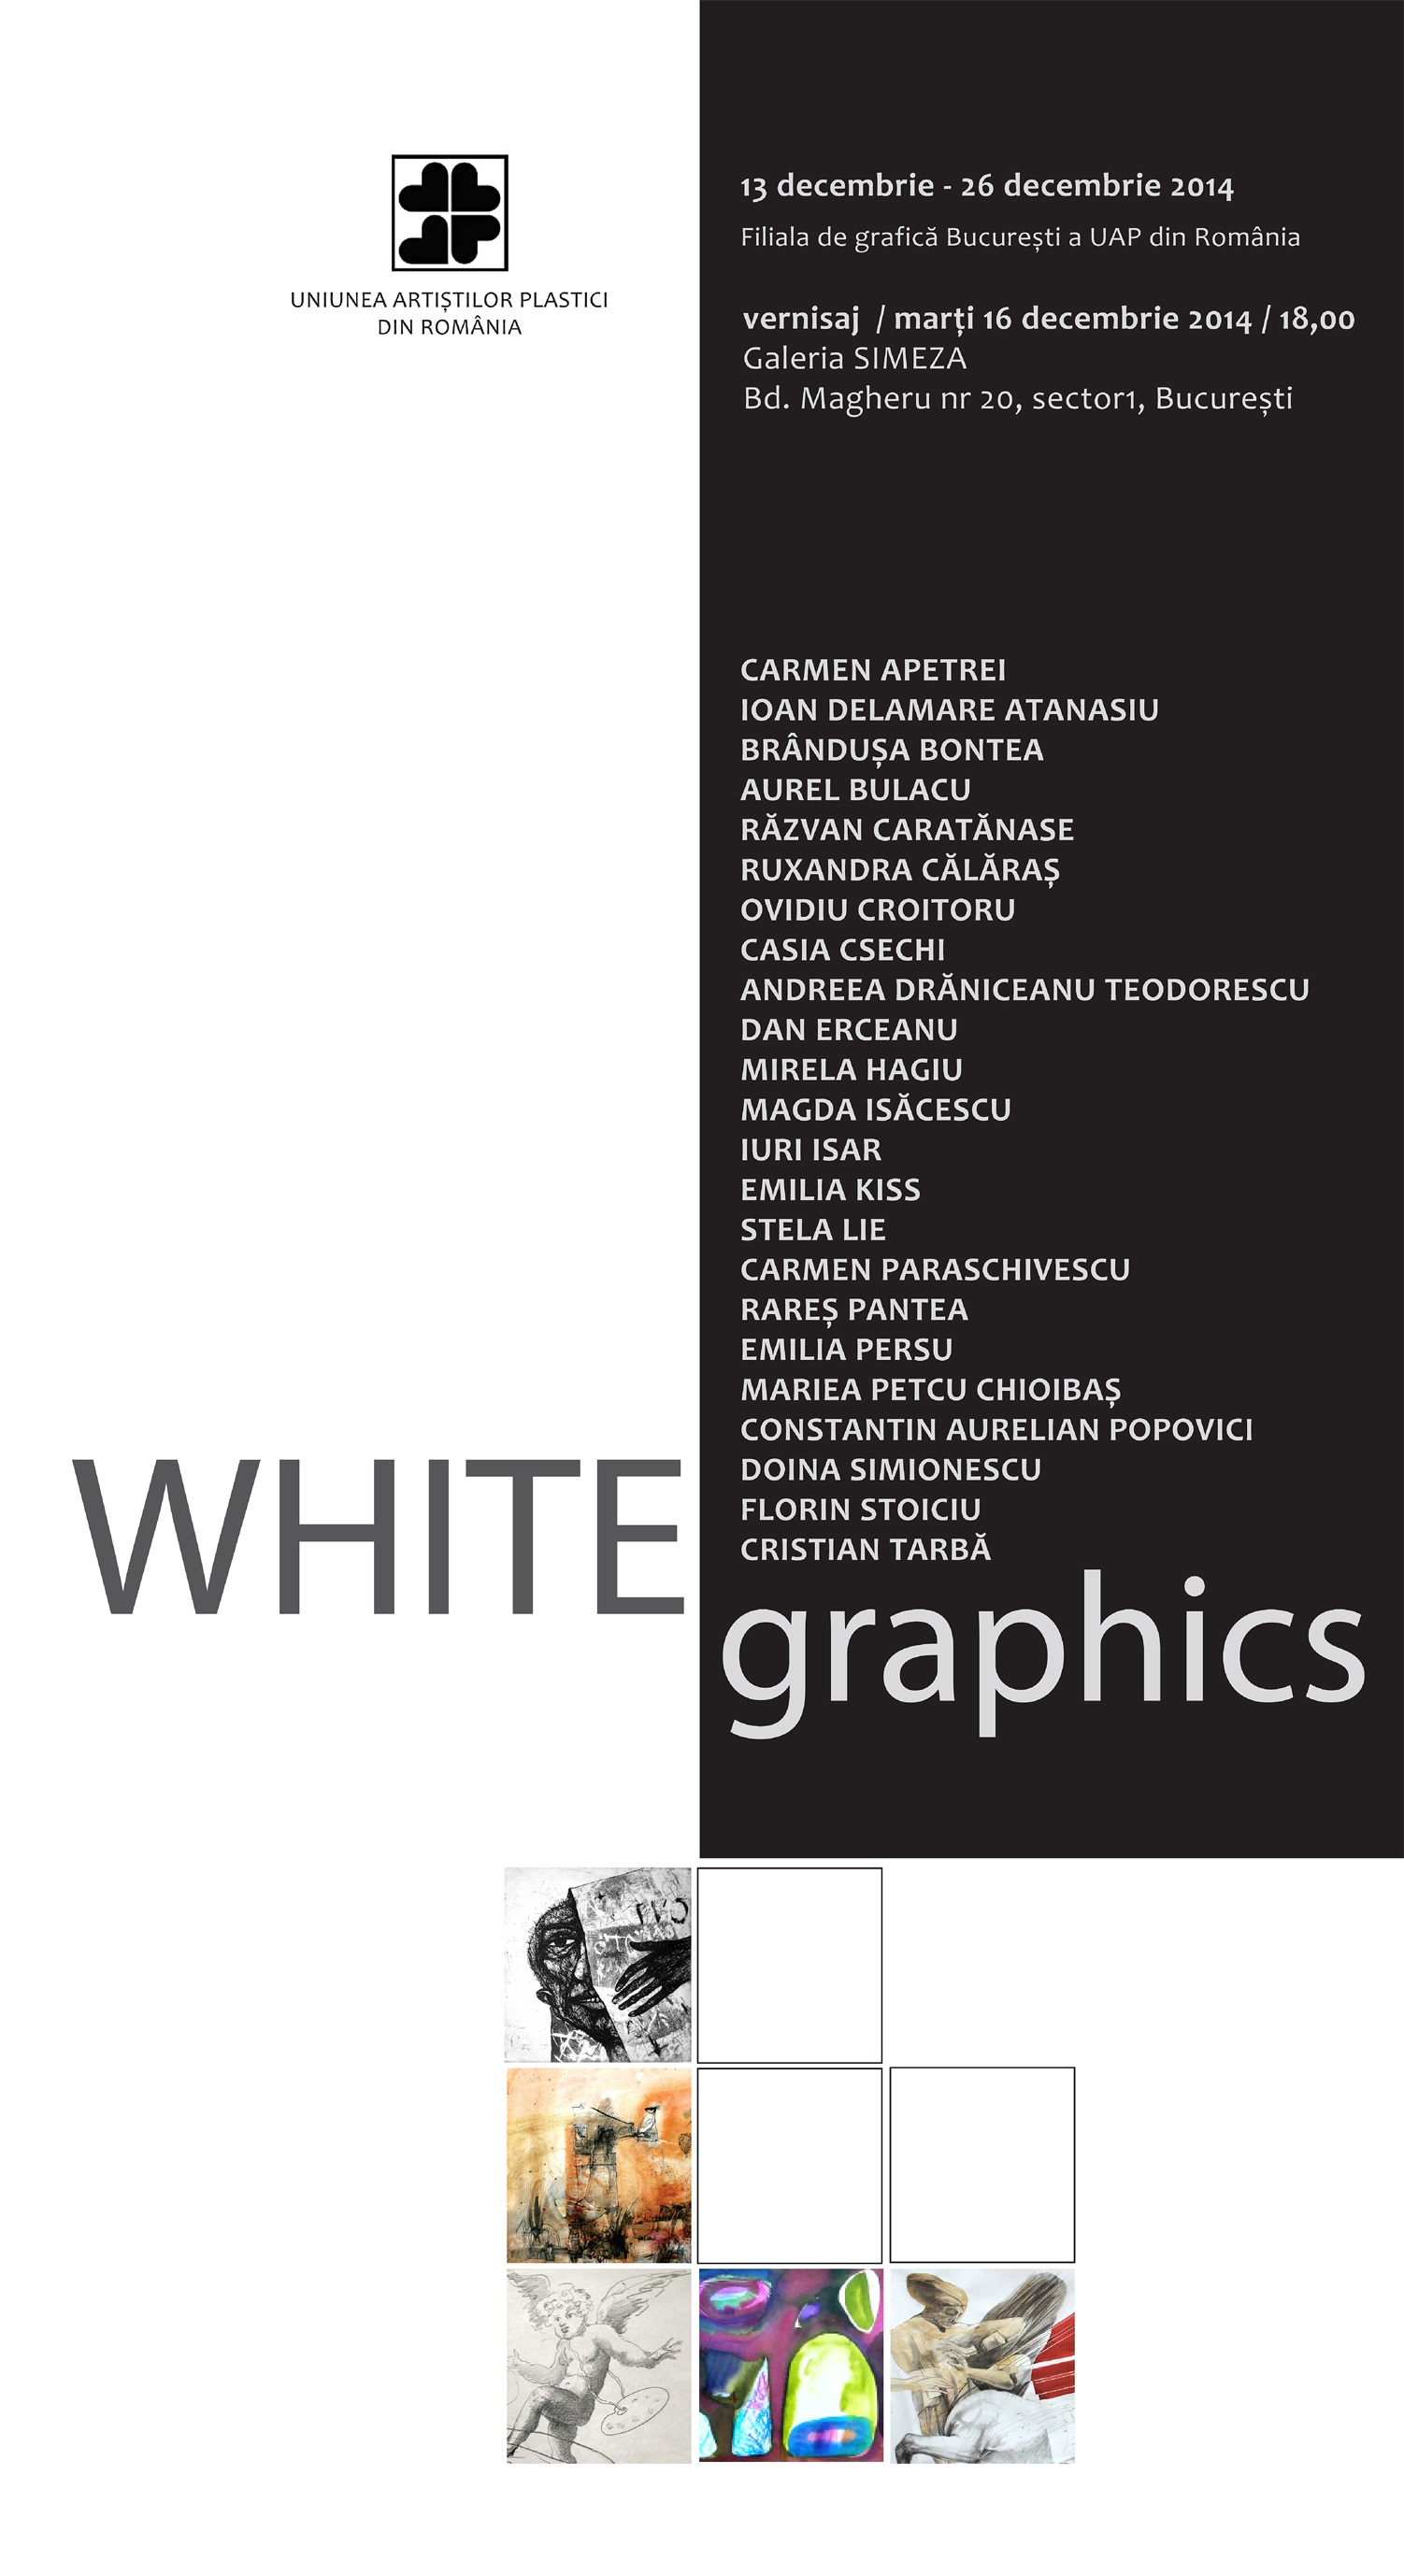 """WHITE graphics"" @ Galeria Simeza, București"